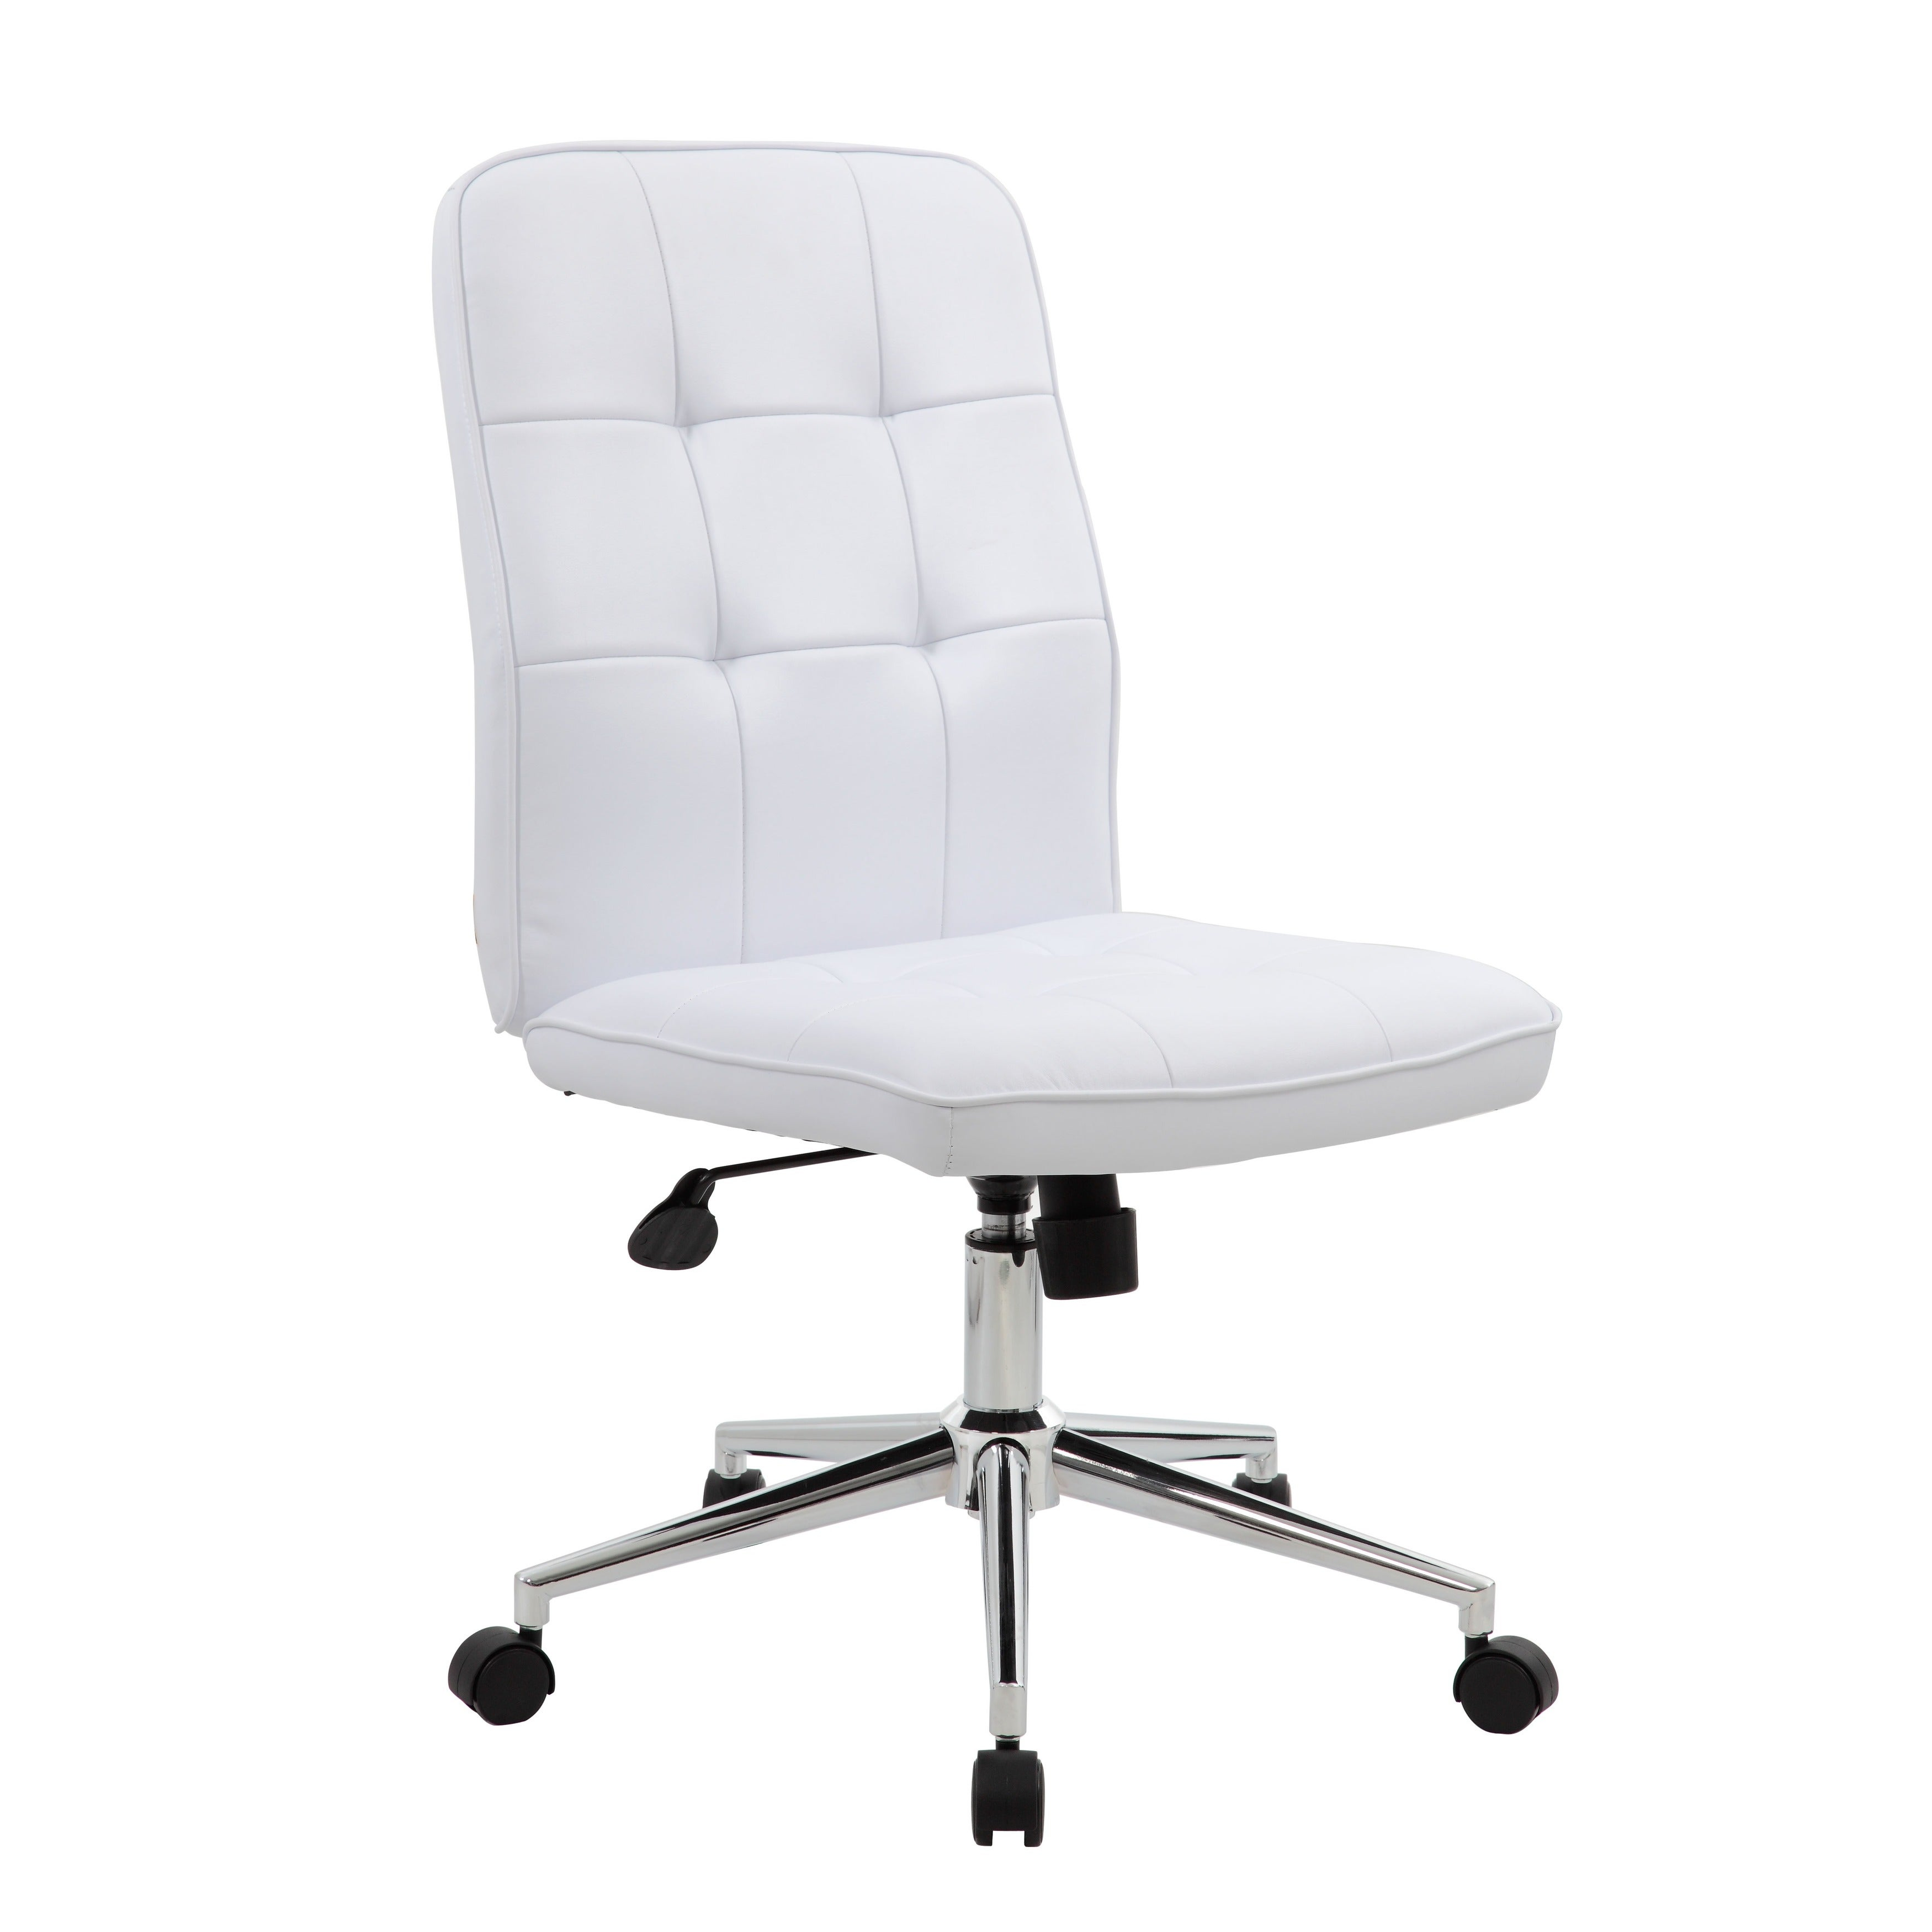 today modern home shipping overstock alder reedy free boss ergonomic office garden product chair clay